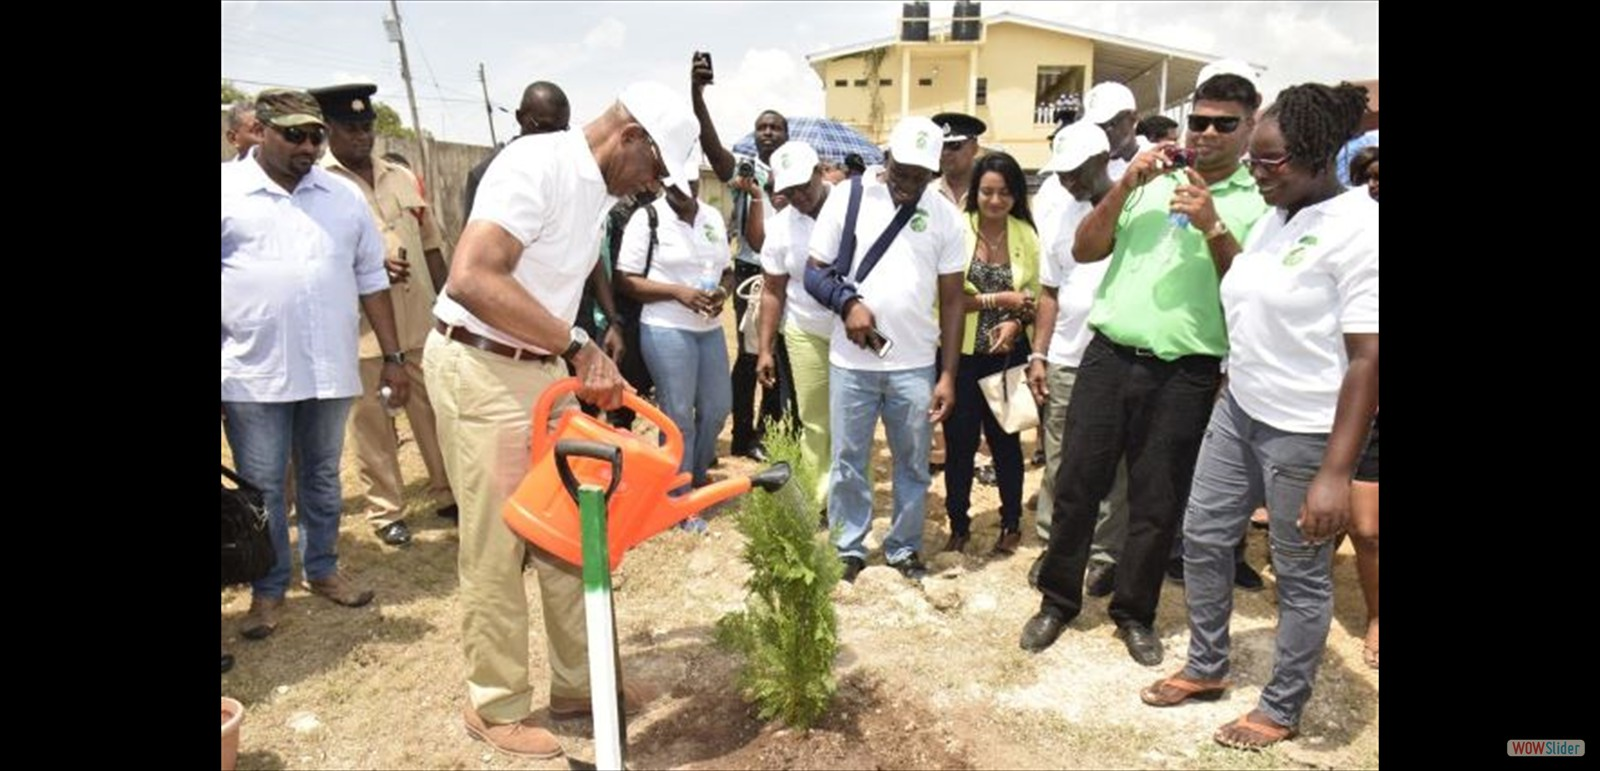 President Granger waters the first tree, which he planted, as part of the National Tree Planting Day exercise, at Bartica.